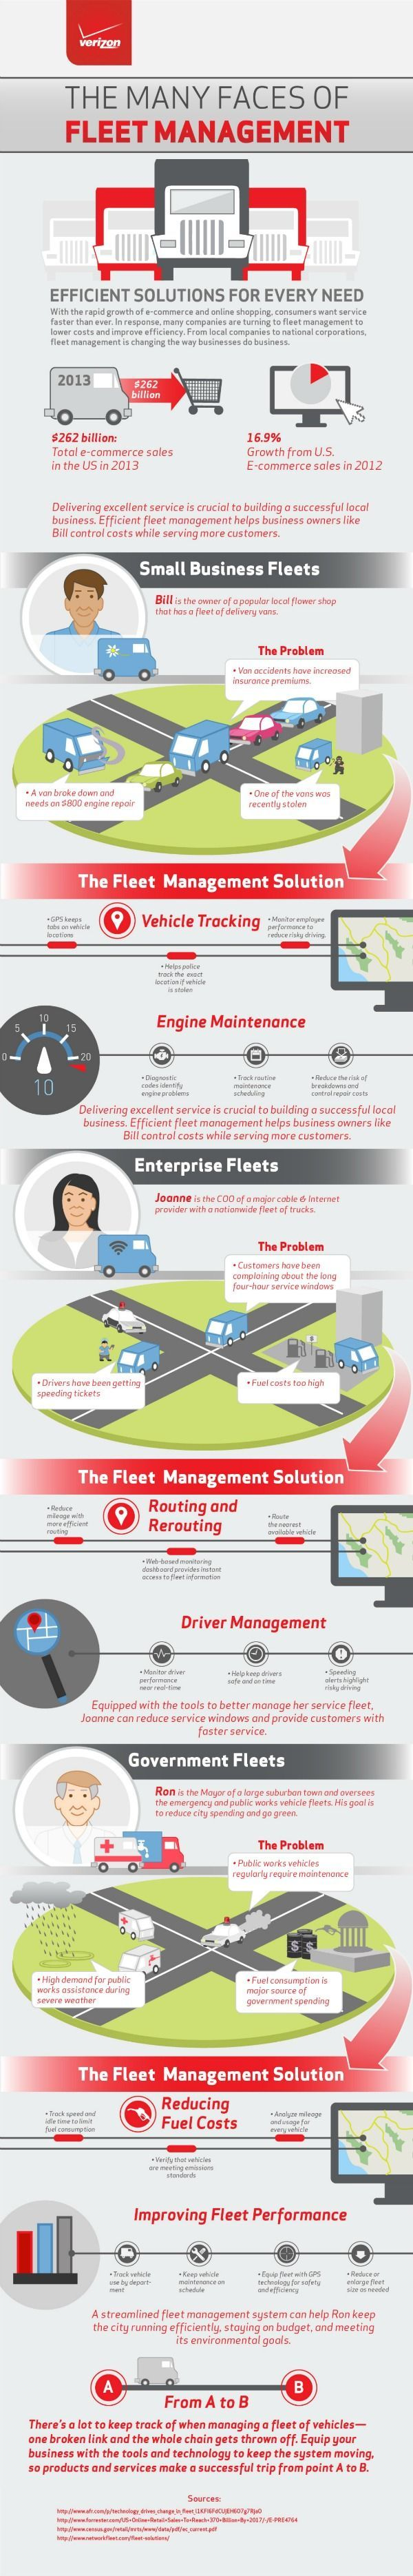 [Infographic] Fleet Management - GPS based fleet solutions are  a great way 2 influence change w/in your organization.